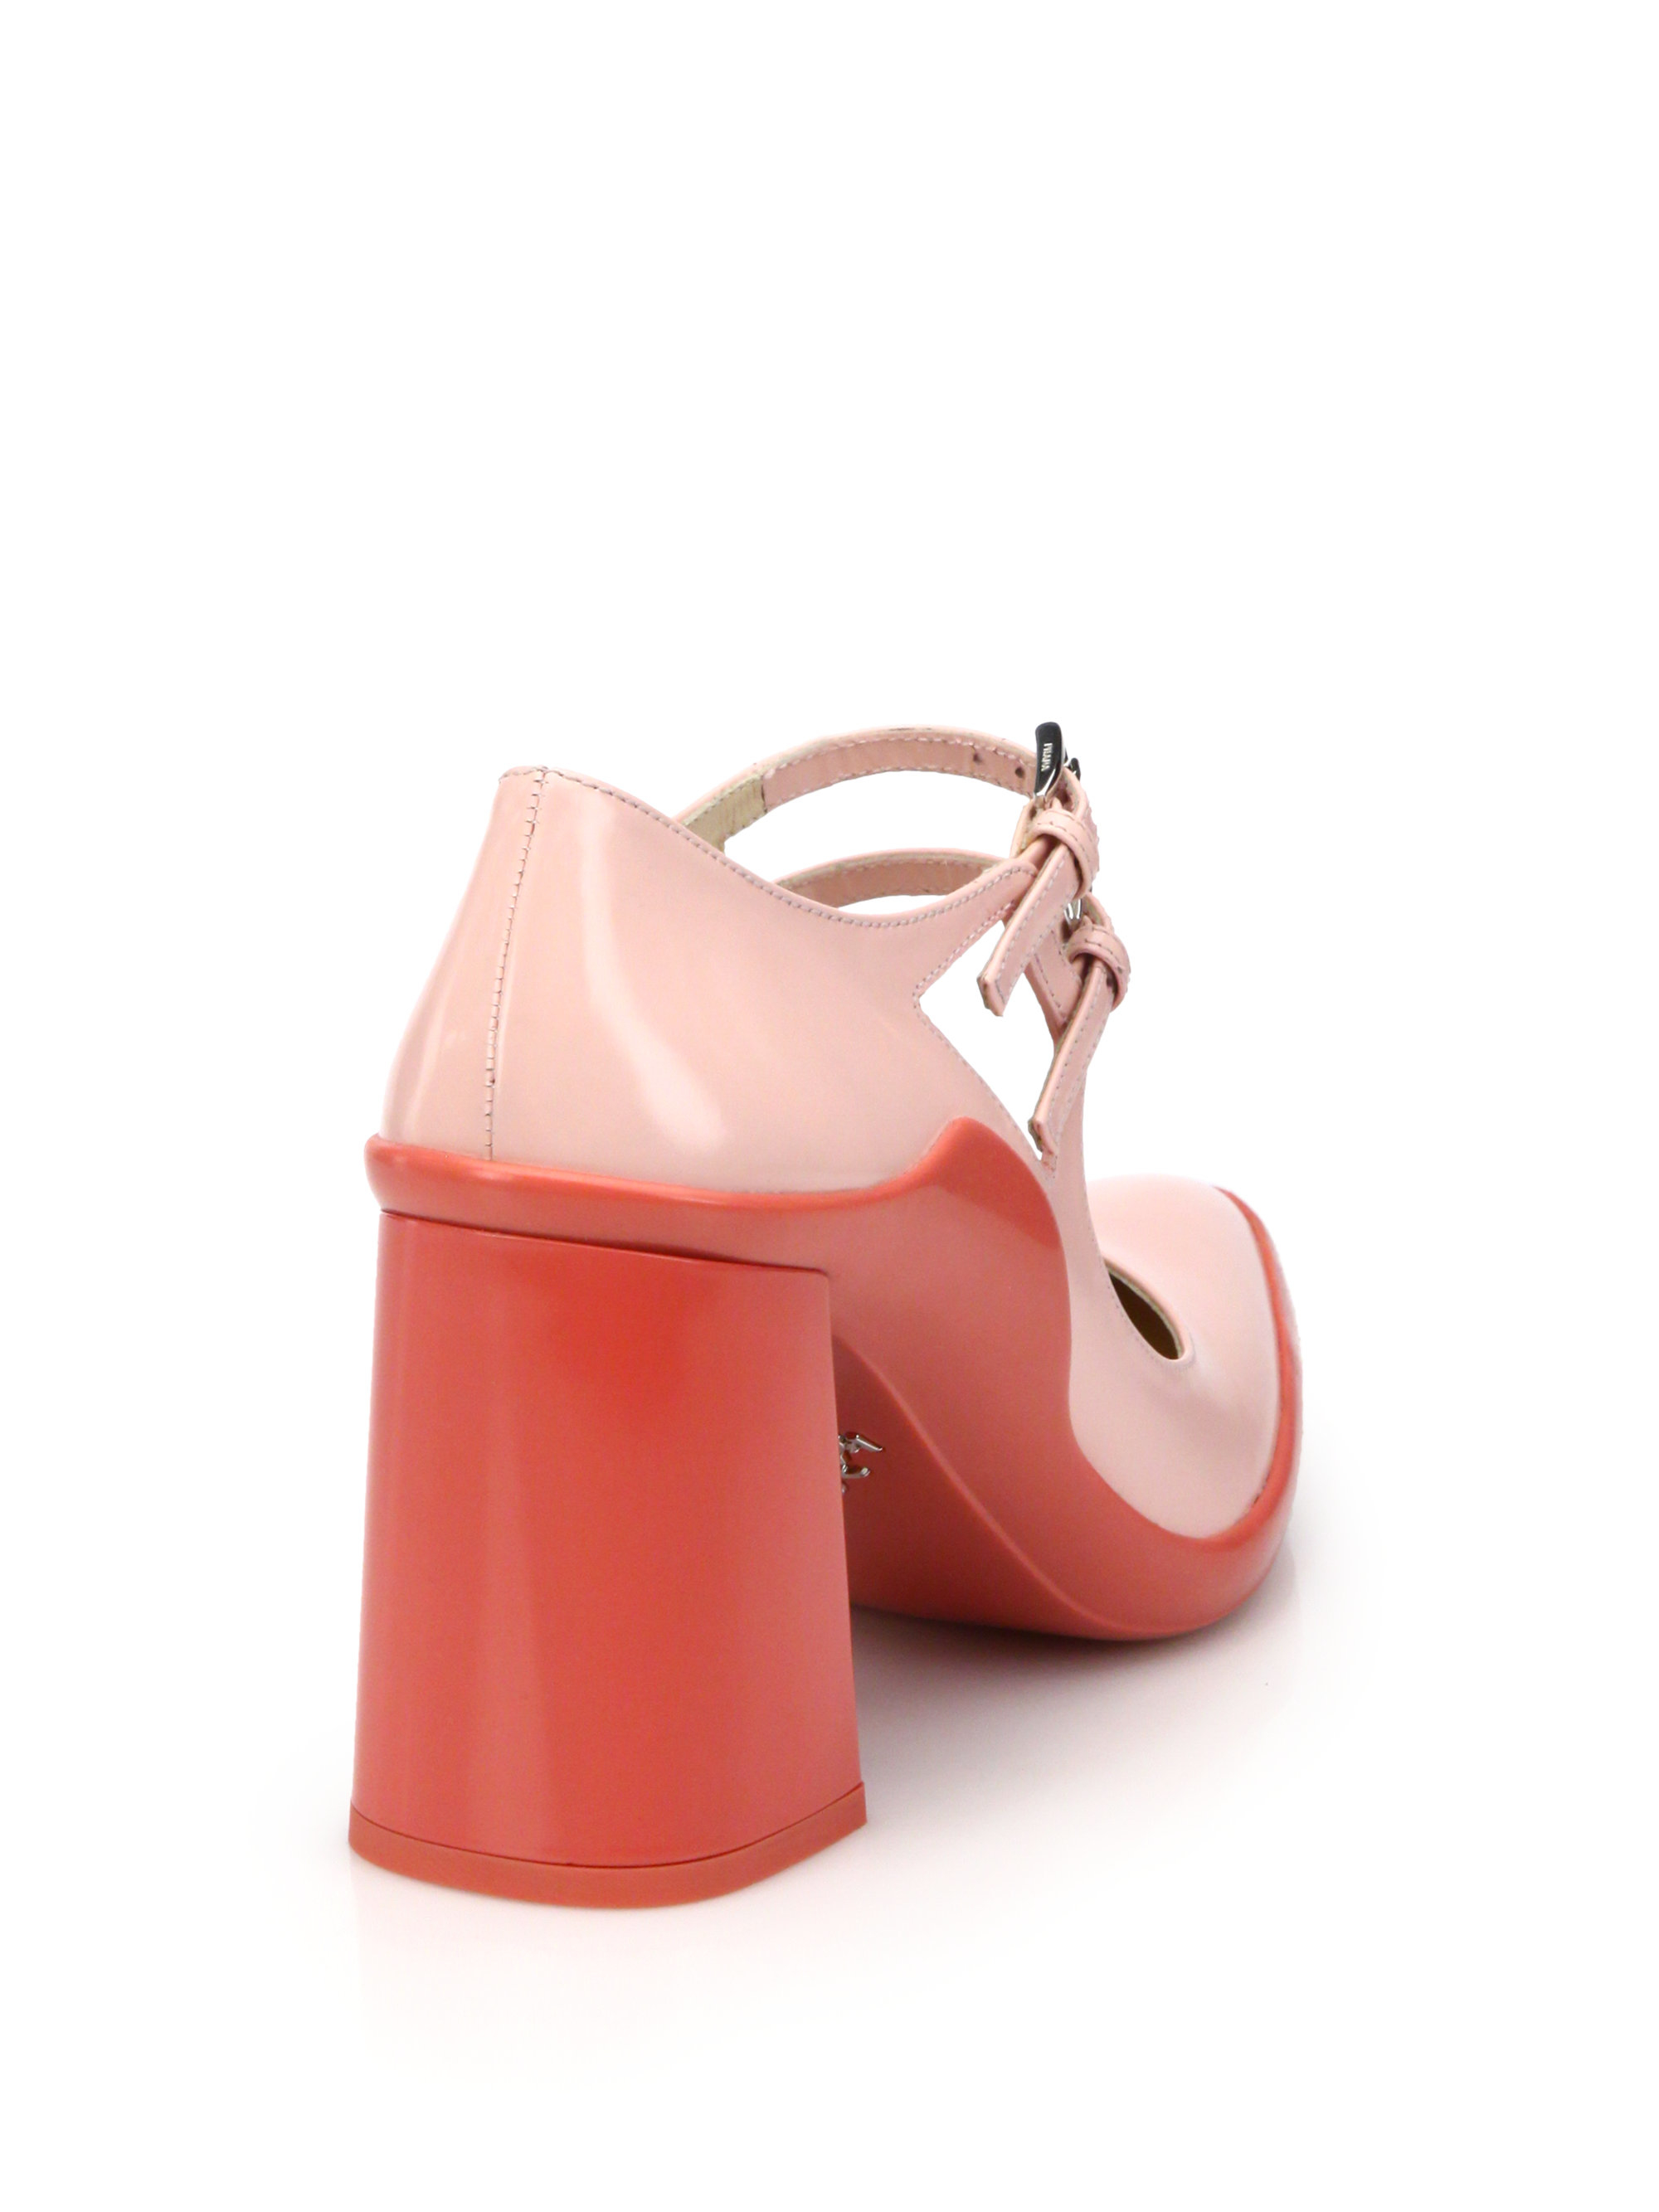 prada pouch price - Prada Two-tone Leather Mary Jane Pumps in Pink (pink-multi)   Lyst